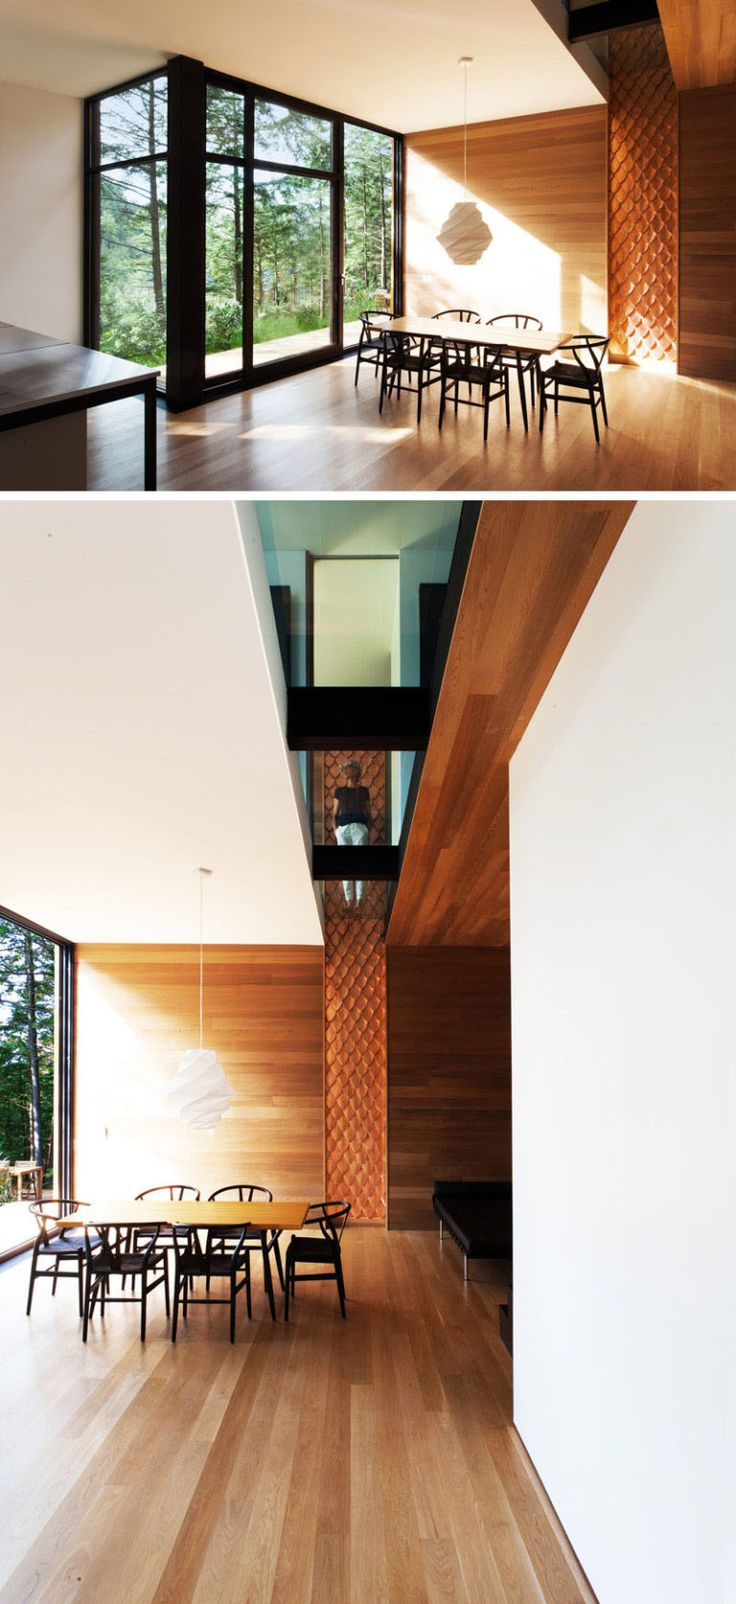 18 best 강화유리 바닥 images on Pinterest | Residential architecture ...